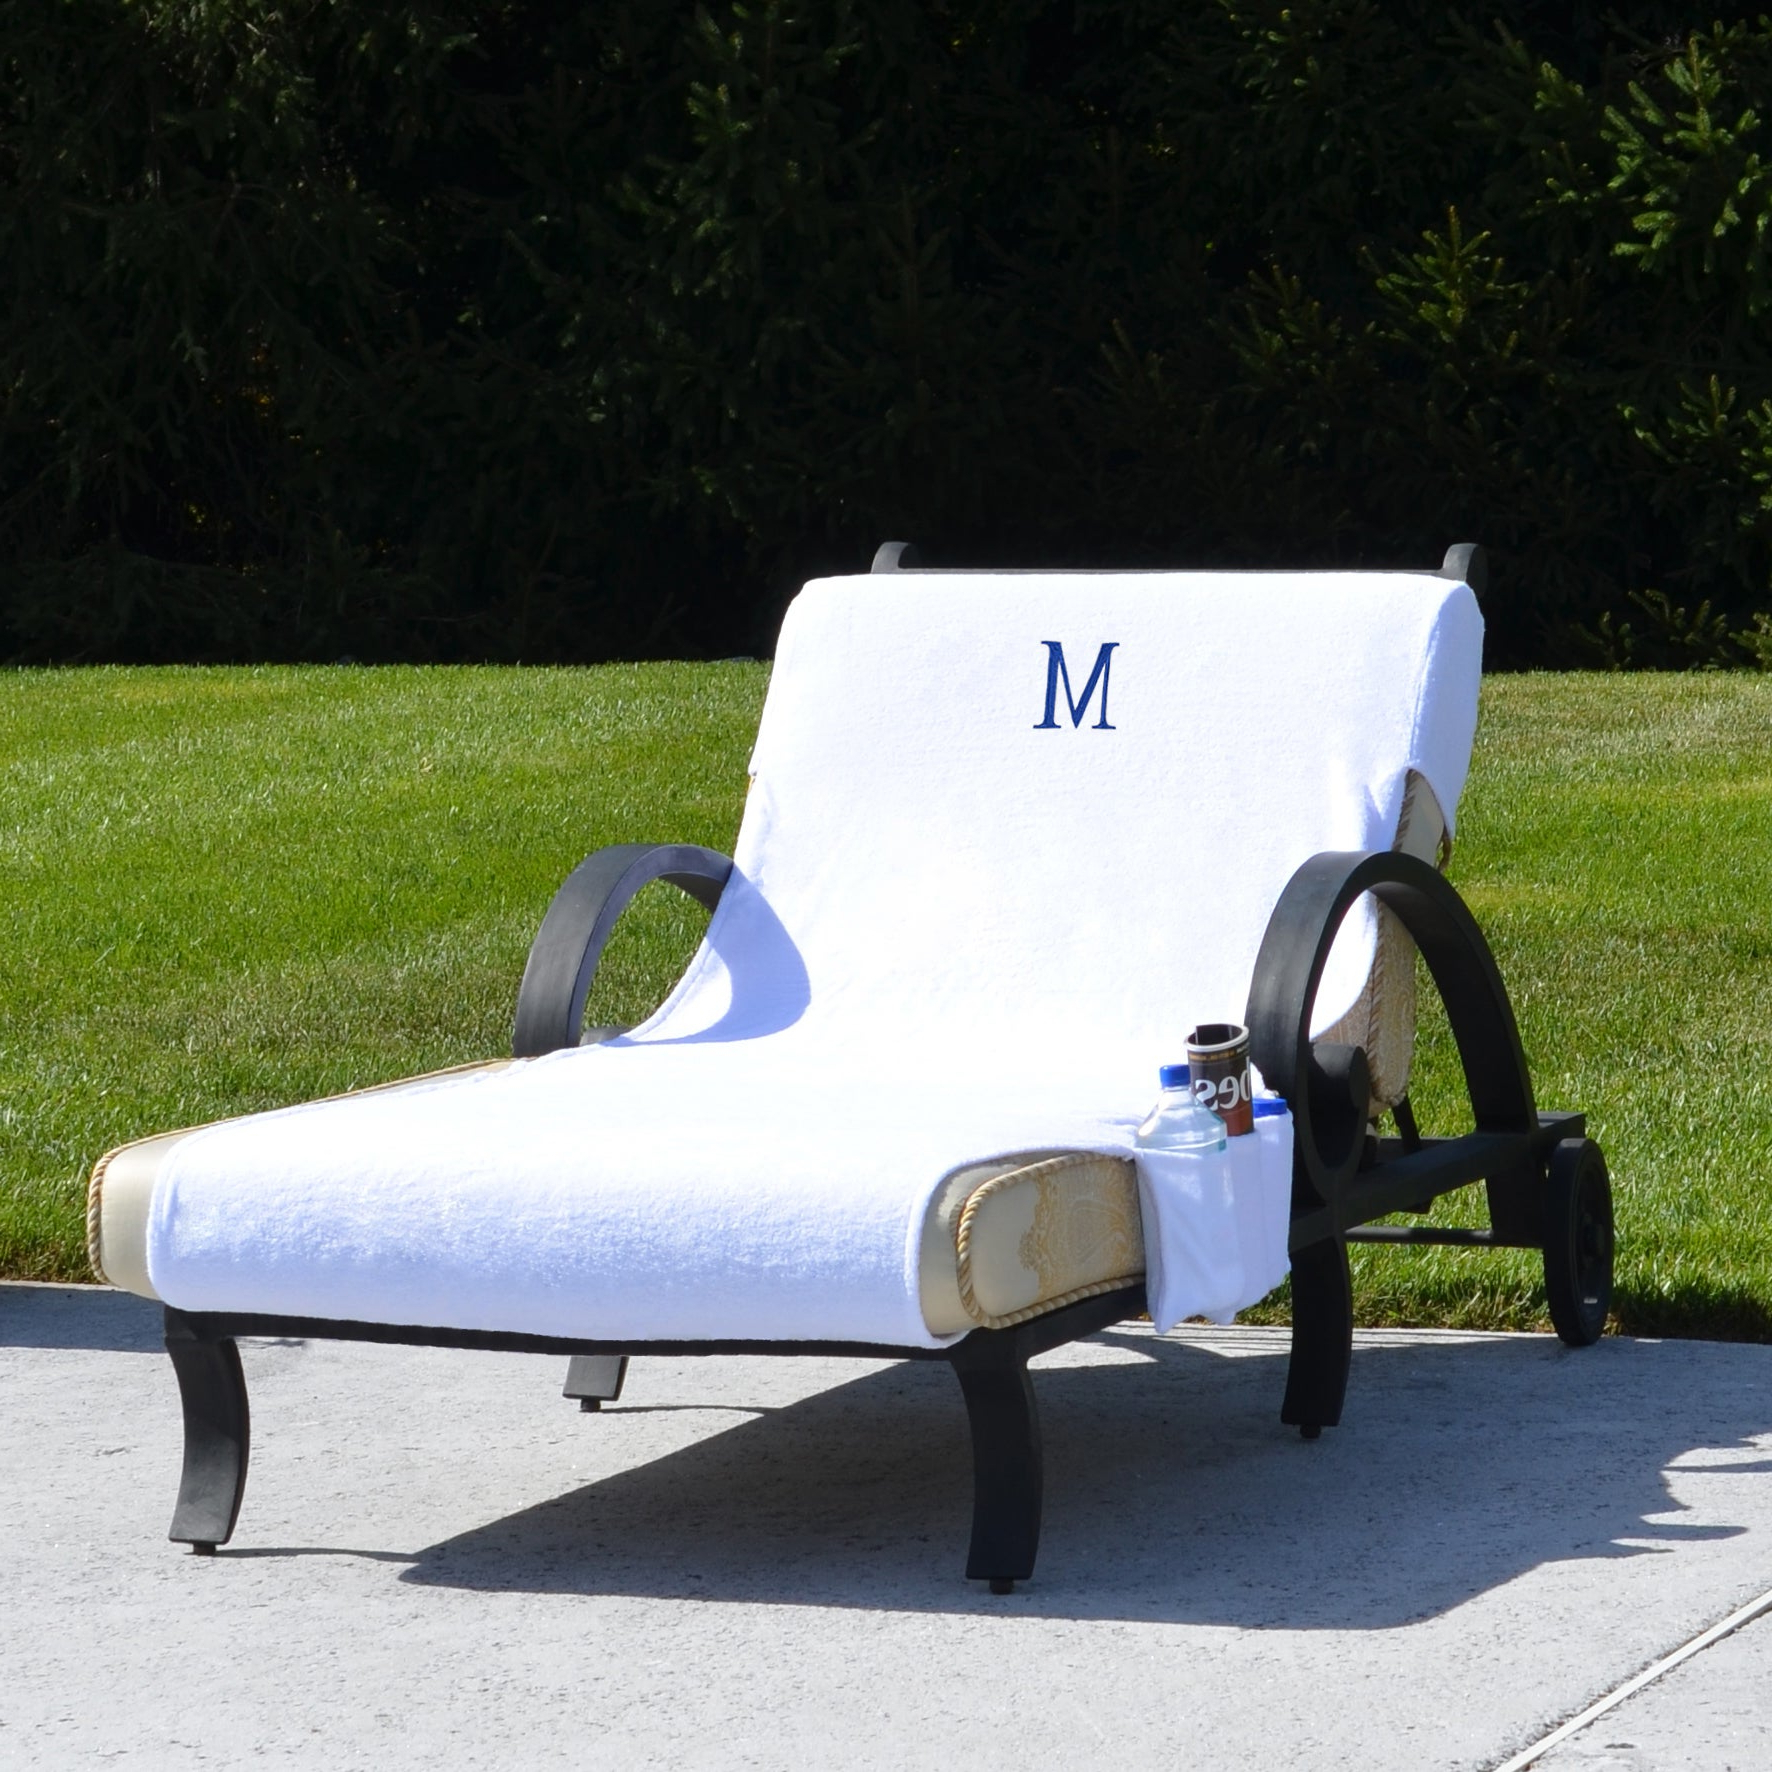 Standard Size Chaise Lounge Chairs Inside Recent Turkish Cotton Monogrammed Towel Cover With Pockets For Standard Size Chaise Lounge Chair (View 8 of 25)